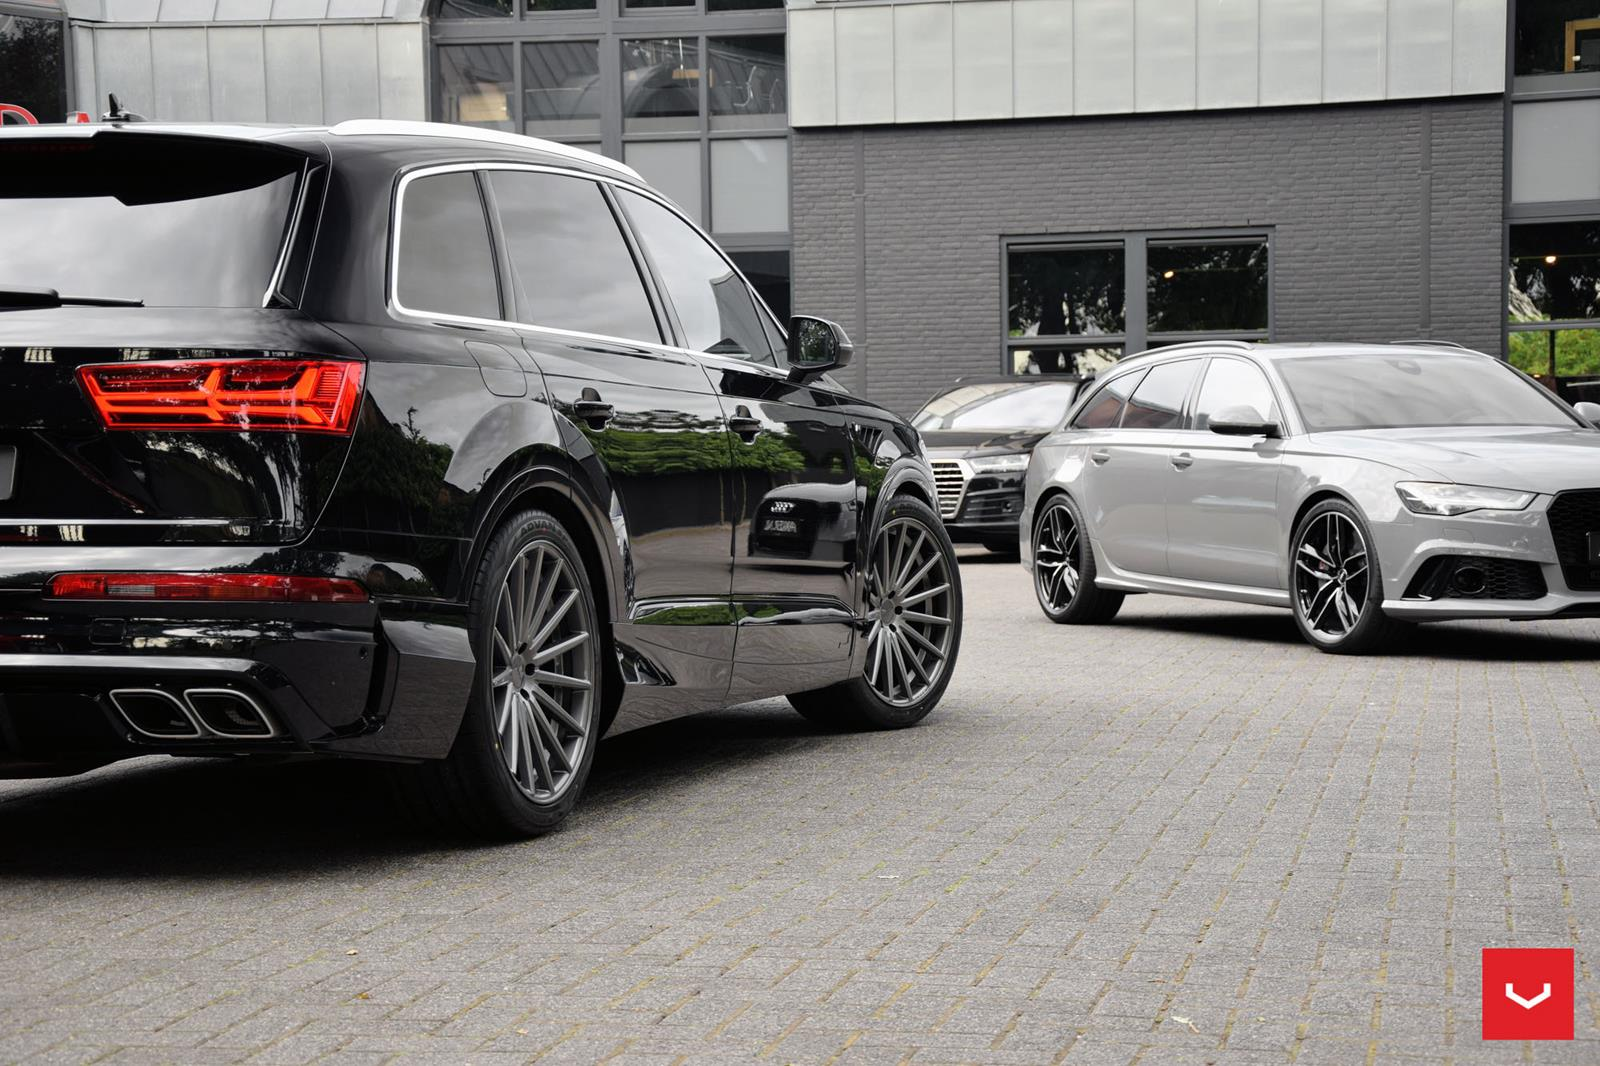 Audi Q7 Vossen Flow Formed Series Vfs2 Vossen Wheels